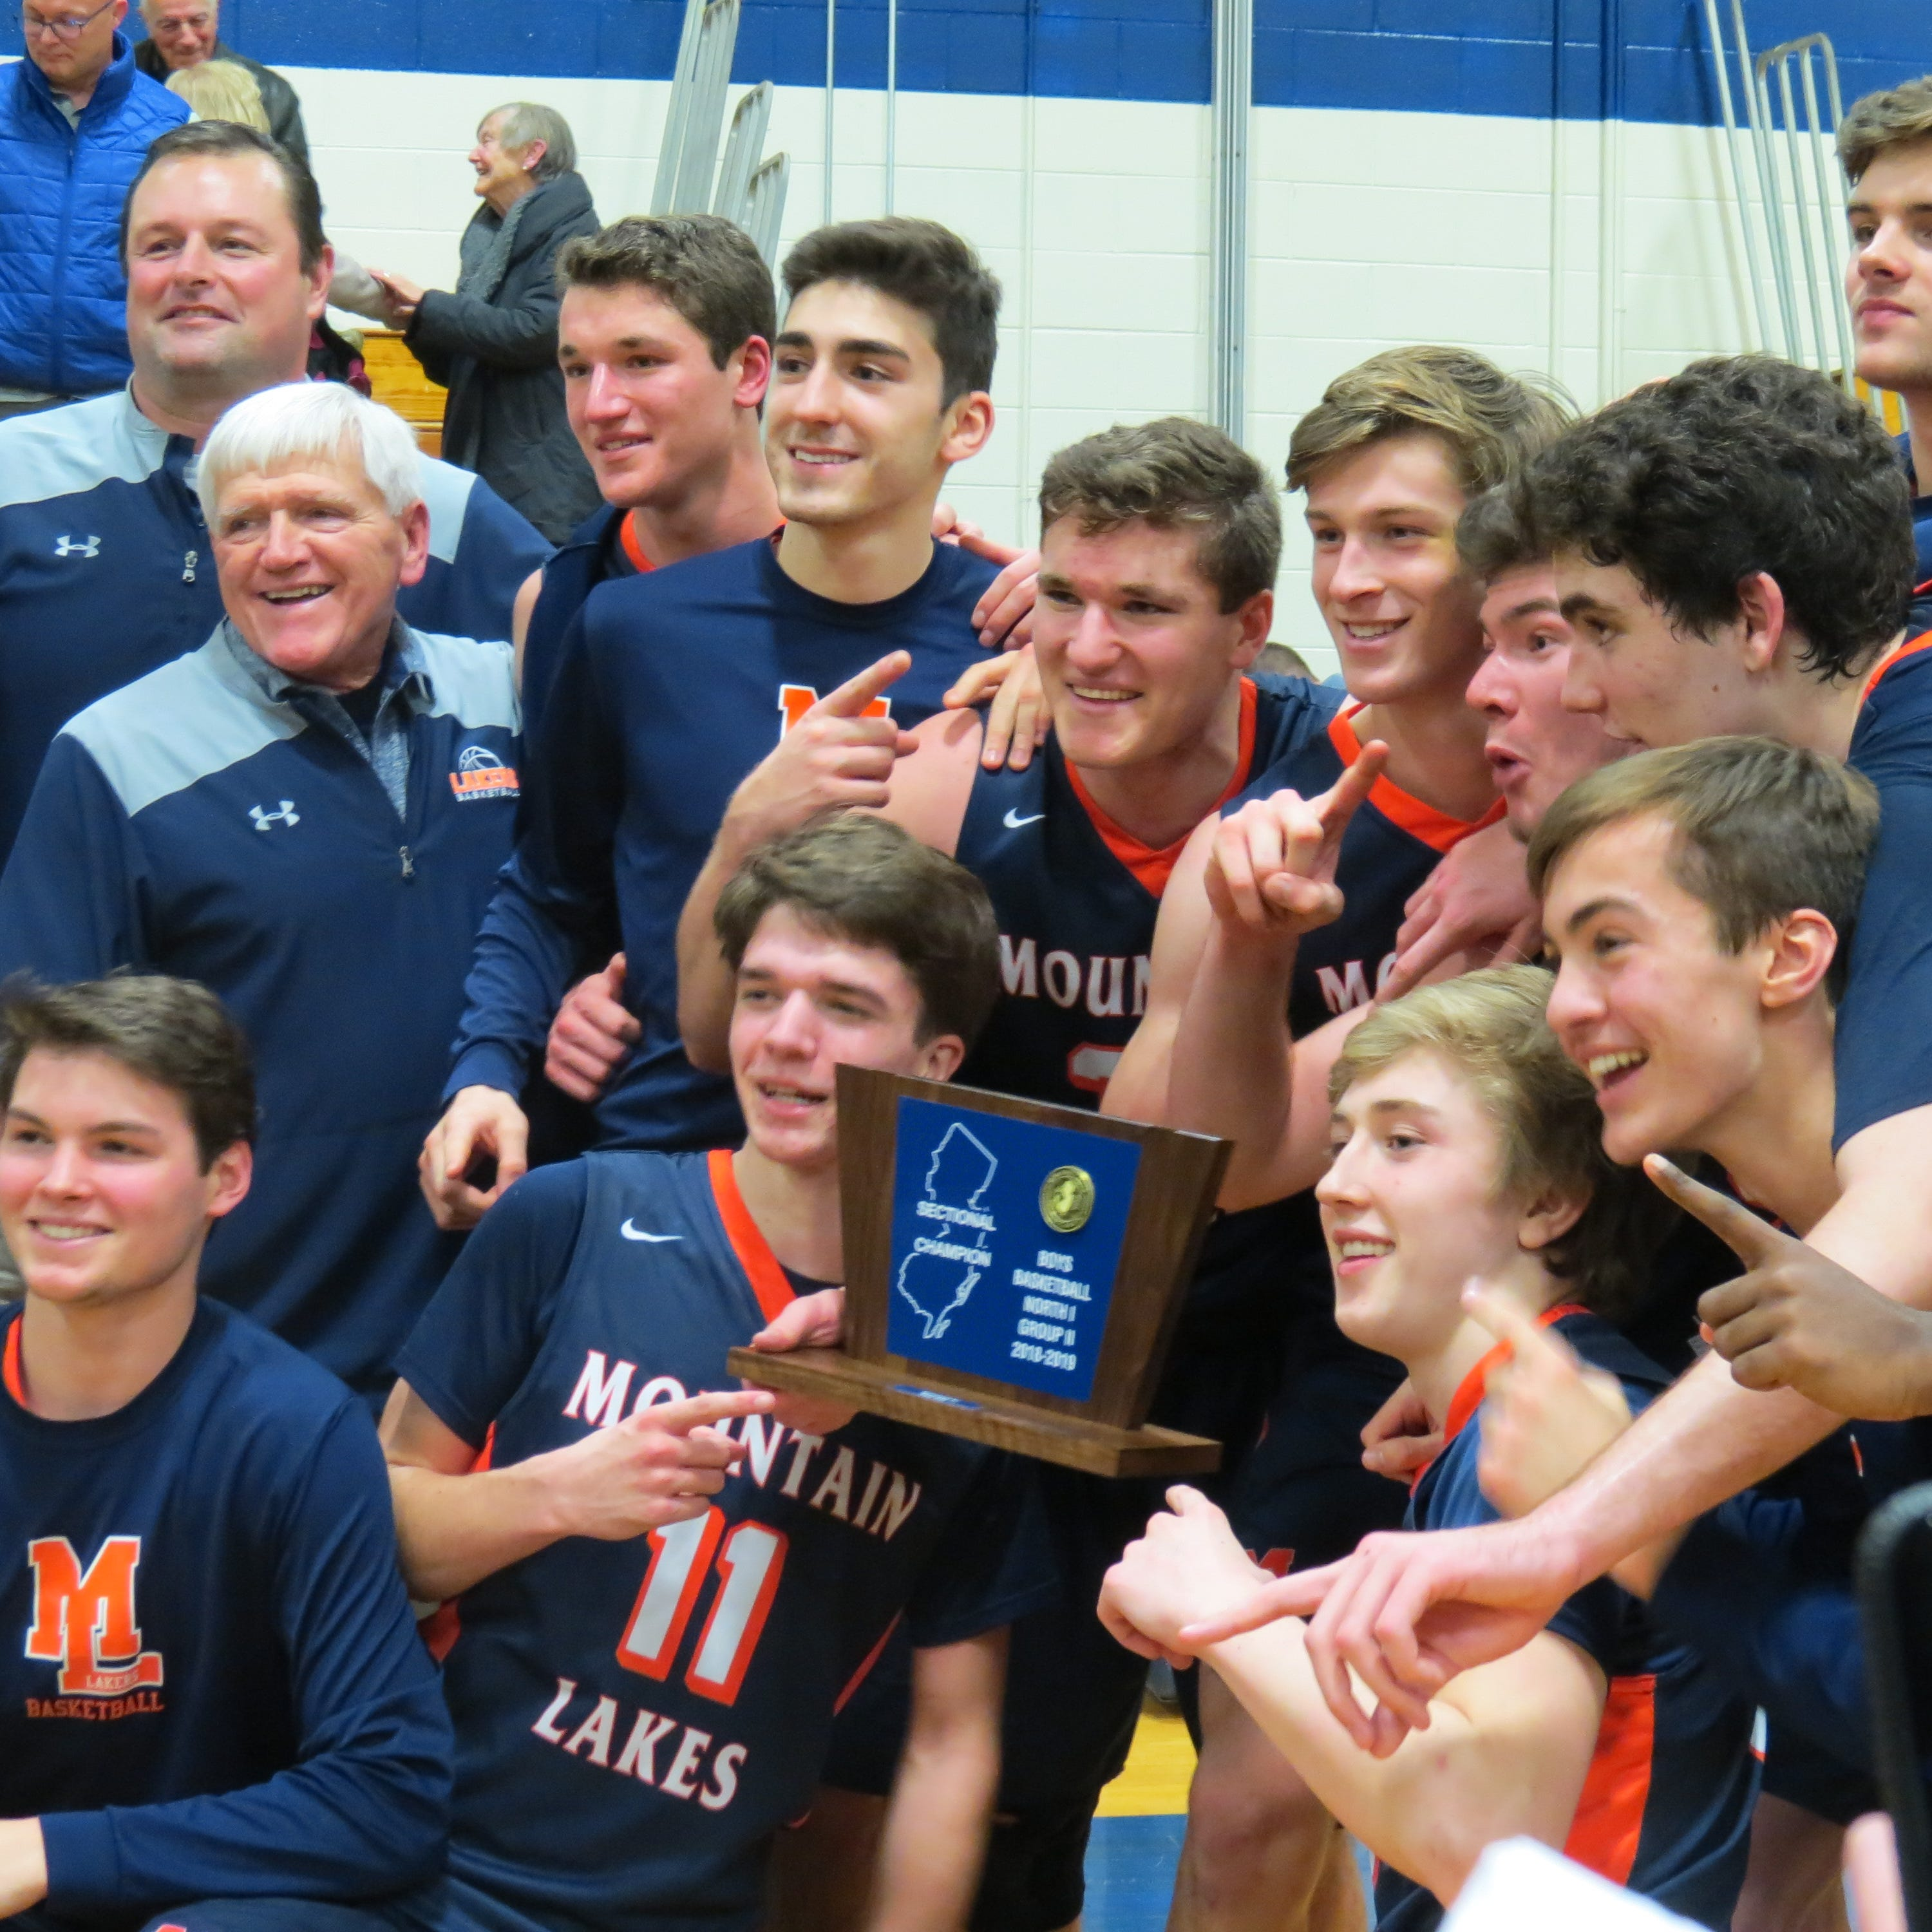 Mountain Lakes boys basketball knocks off defending champion Ramsey in sectional final